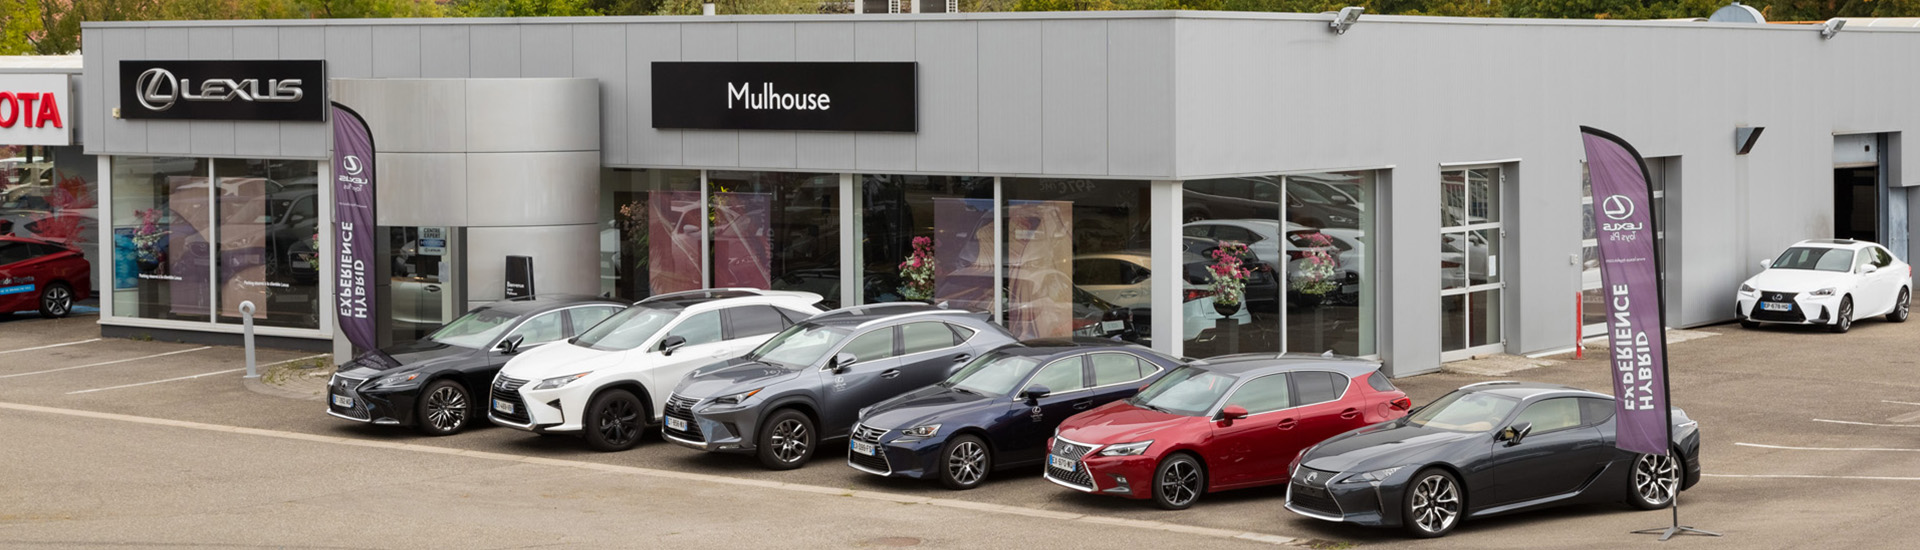 Concession Lexus Toys Plus Mulhouse